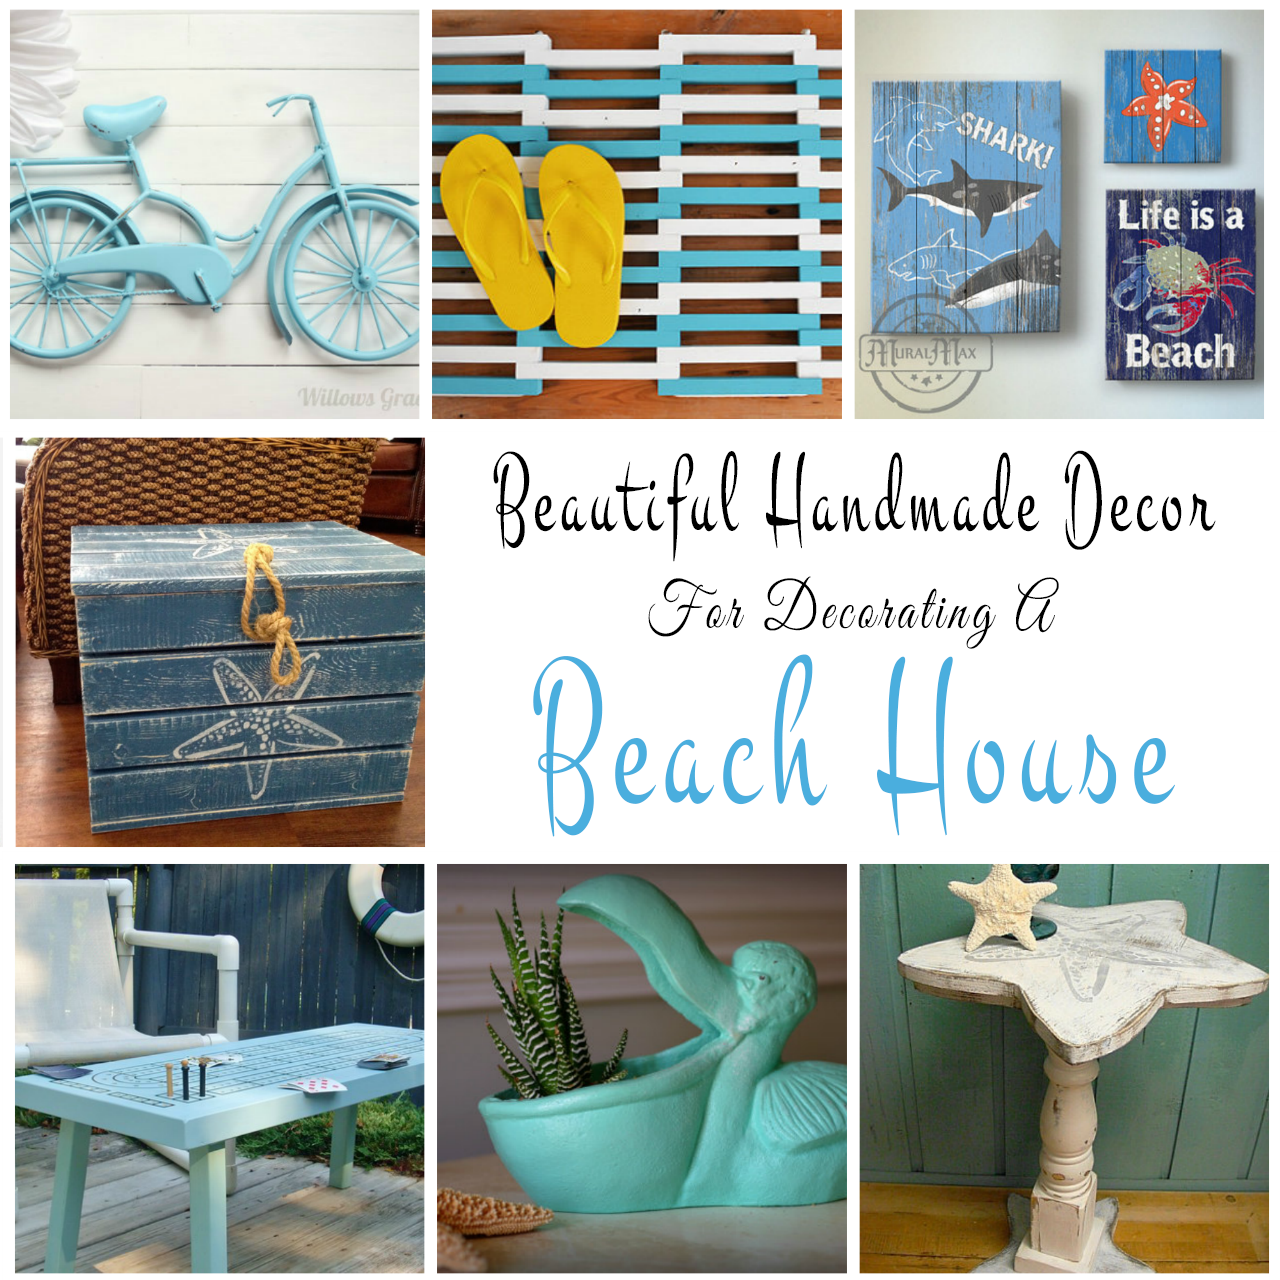 Beach Home Decor Ideas: 25 Handmade Decor Ideas For Decorating A Beach House